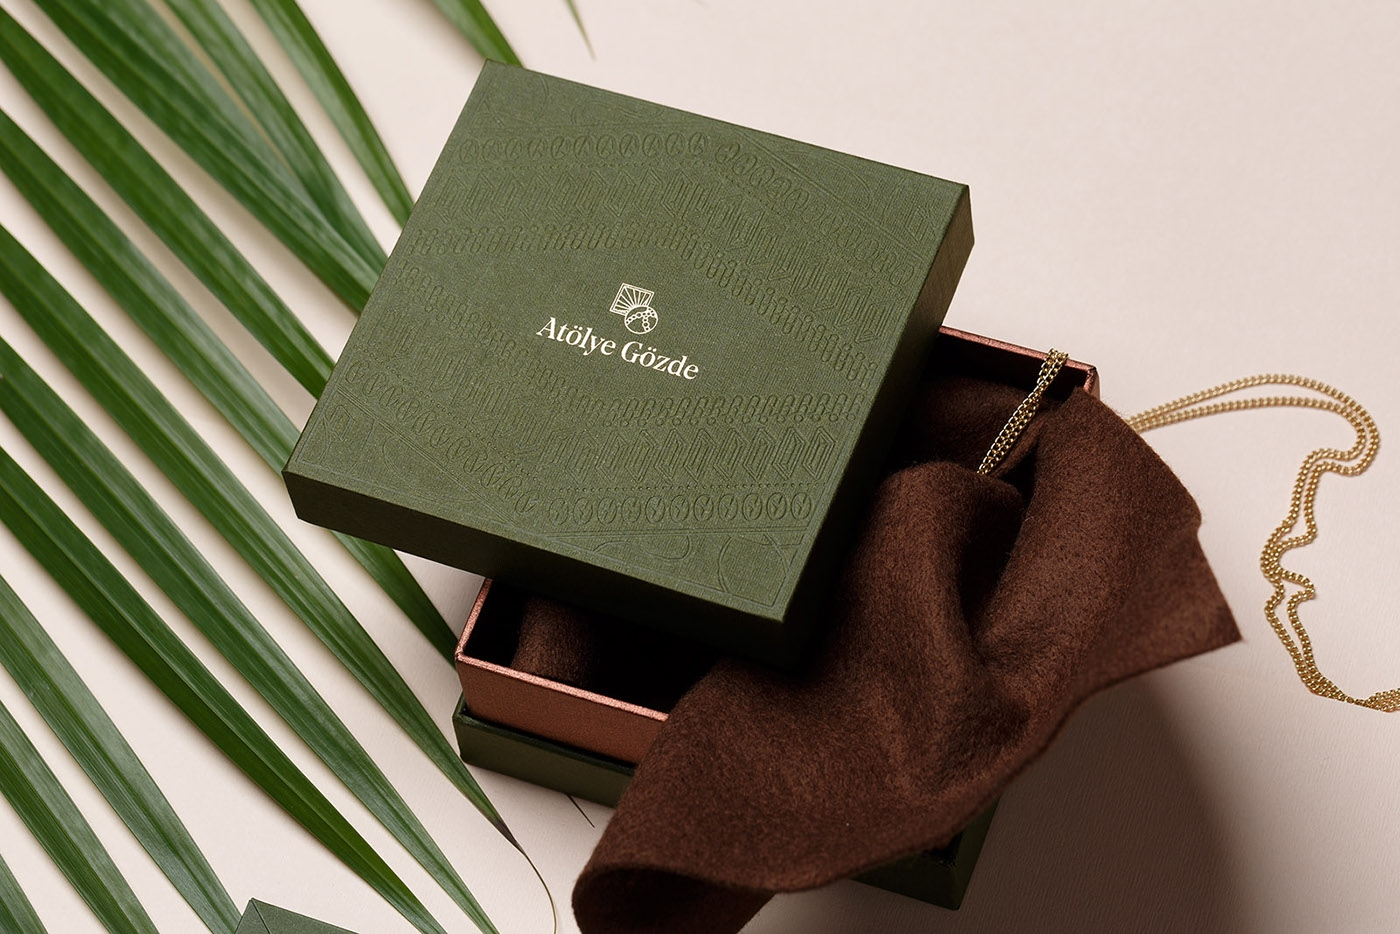 Atolye Gozde Branding Jewelry Packaging